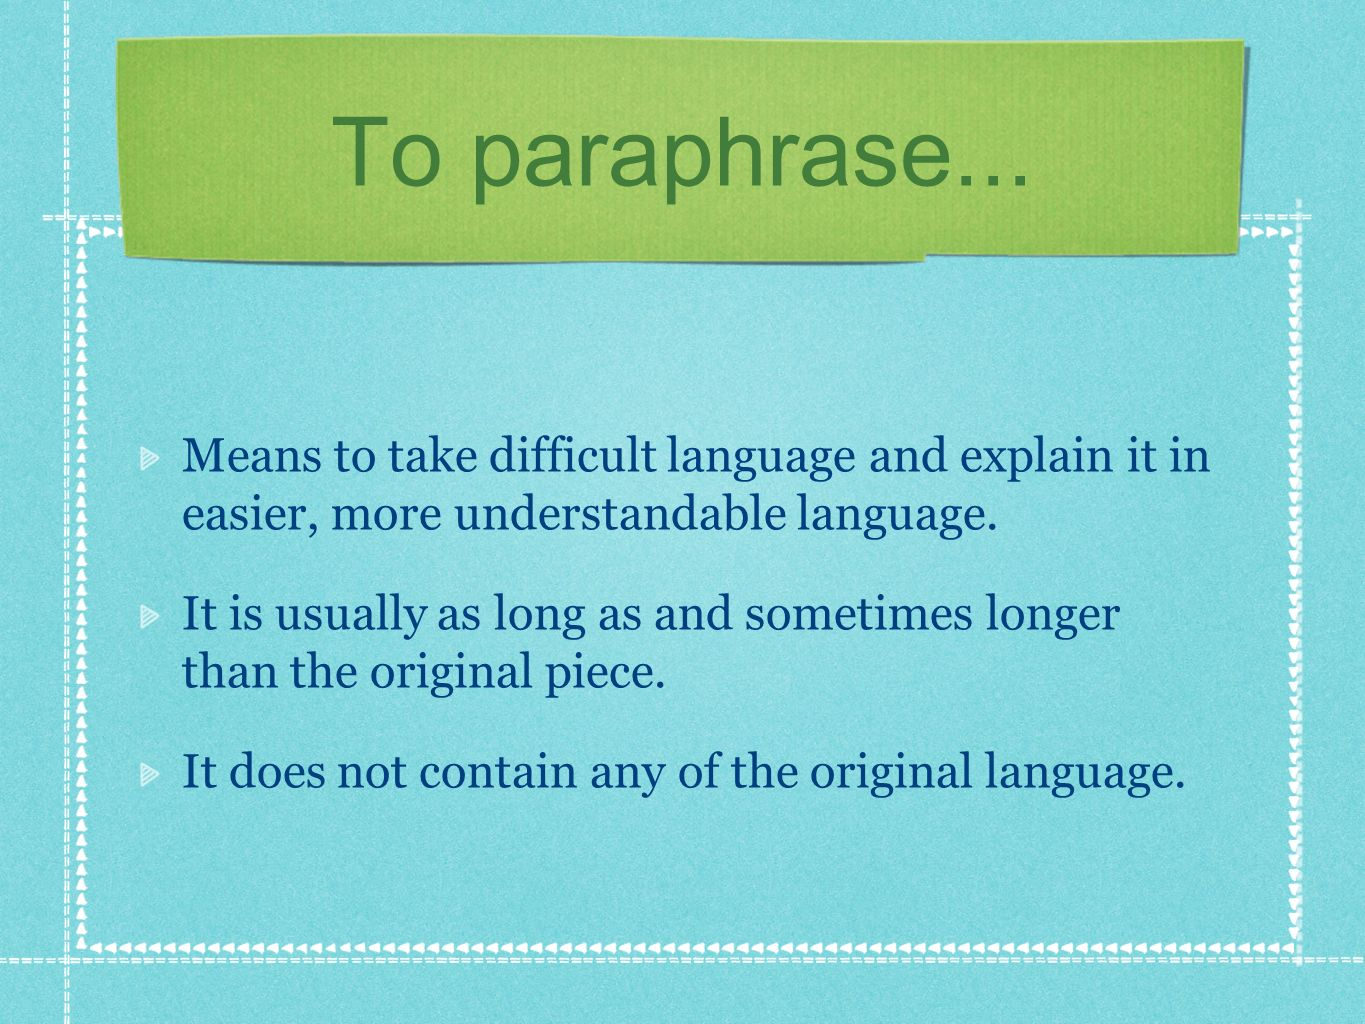 To paraphrase... Means to take difficult language and explain it in easier, more understandable language. It is usually as long as and sometimes longe